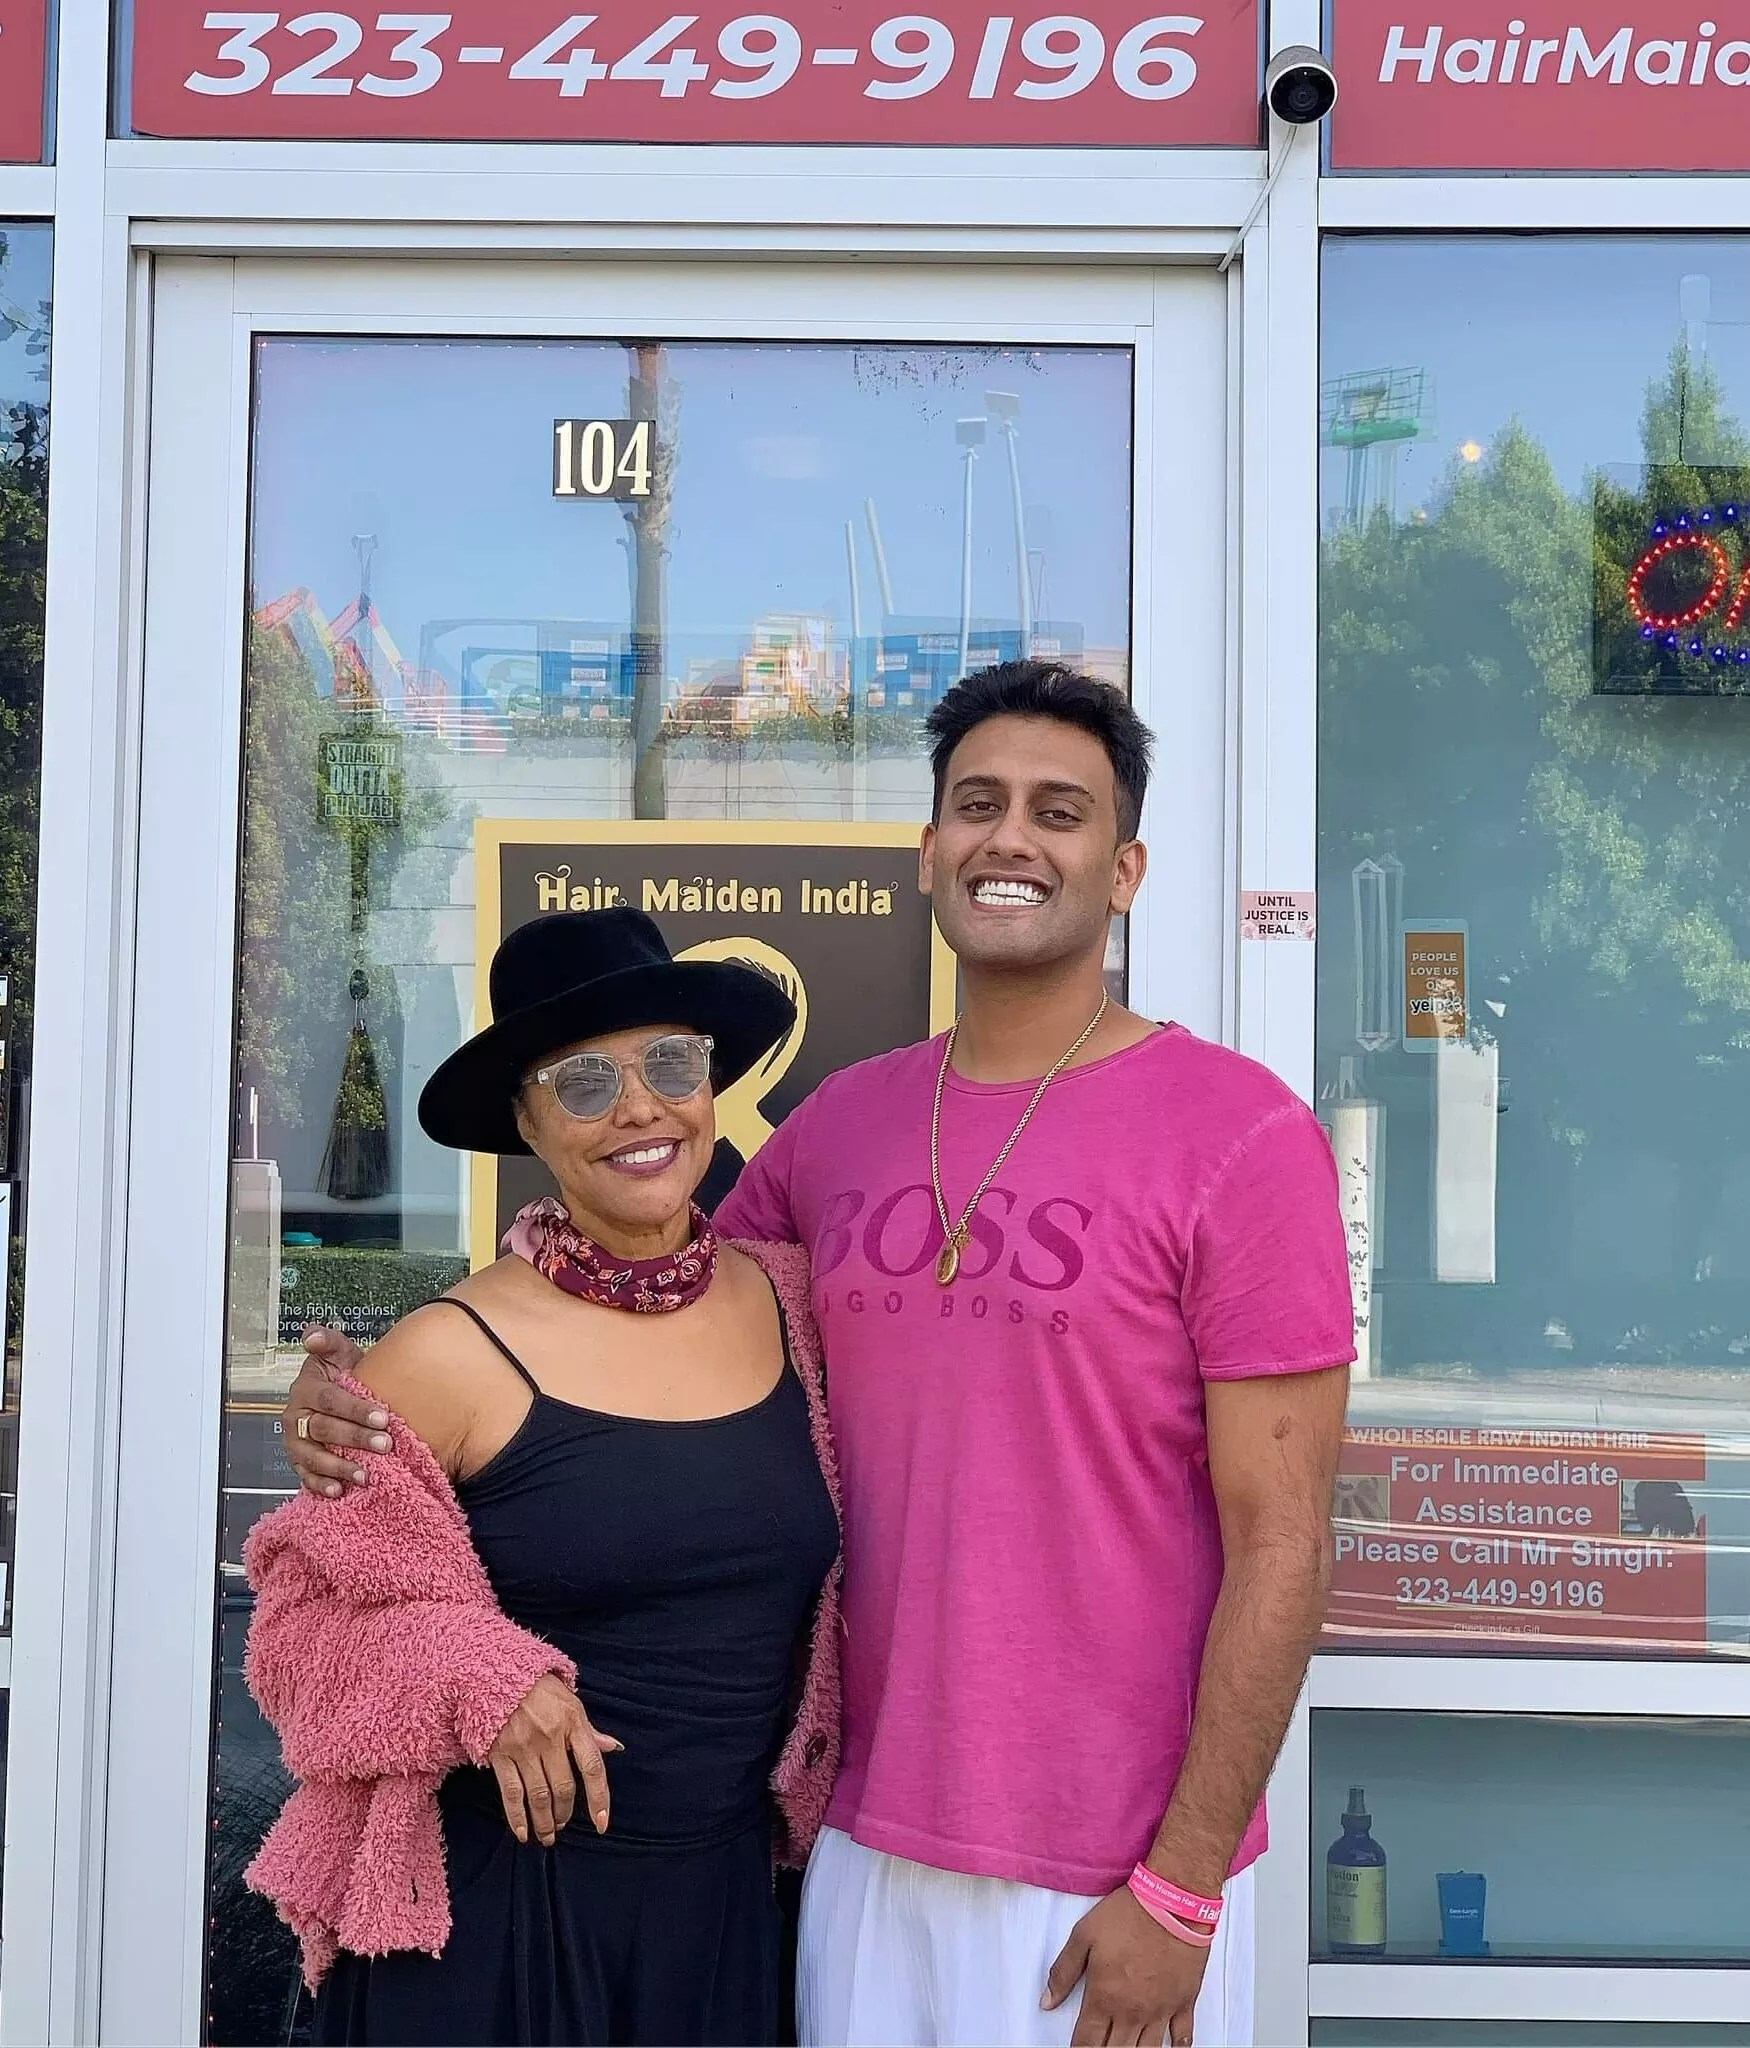 Actors Lynn Whitfield from Greenleaf and Rocky Singh Kandola from Castles in the Air in Los Angeles in front of the Hair Maiden India showroom